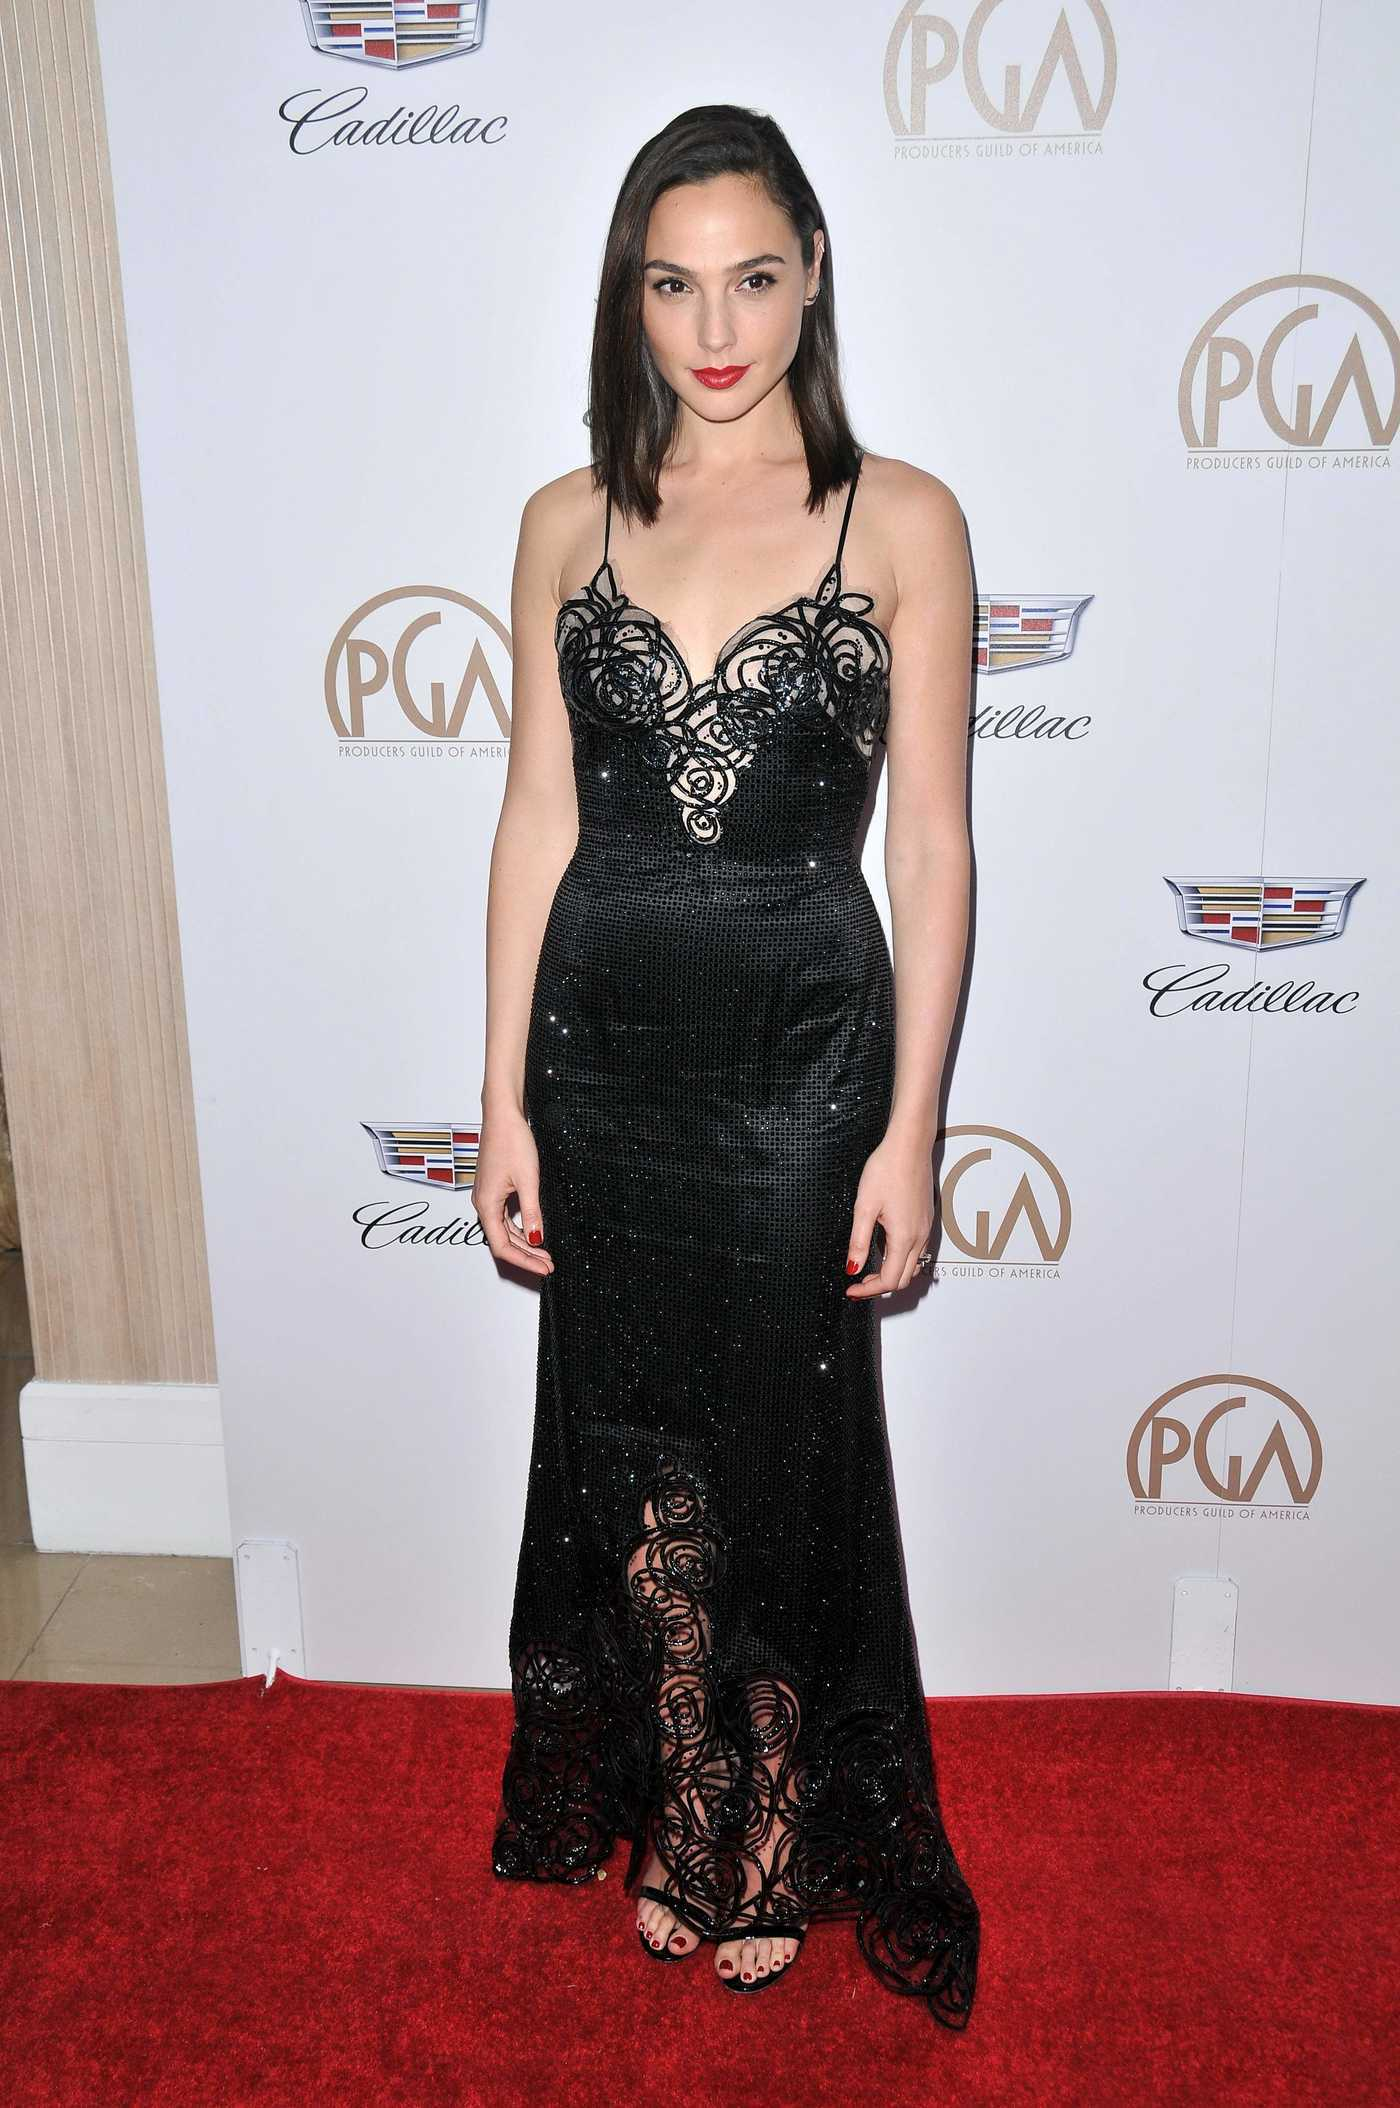 Gal Gadot Attends the 29th Annual Producers Guild Awards in Beverly Hills 01/20/2018